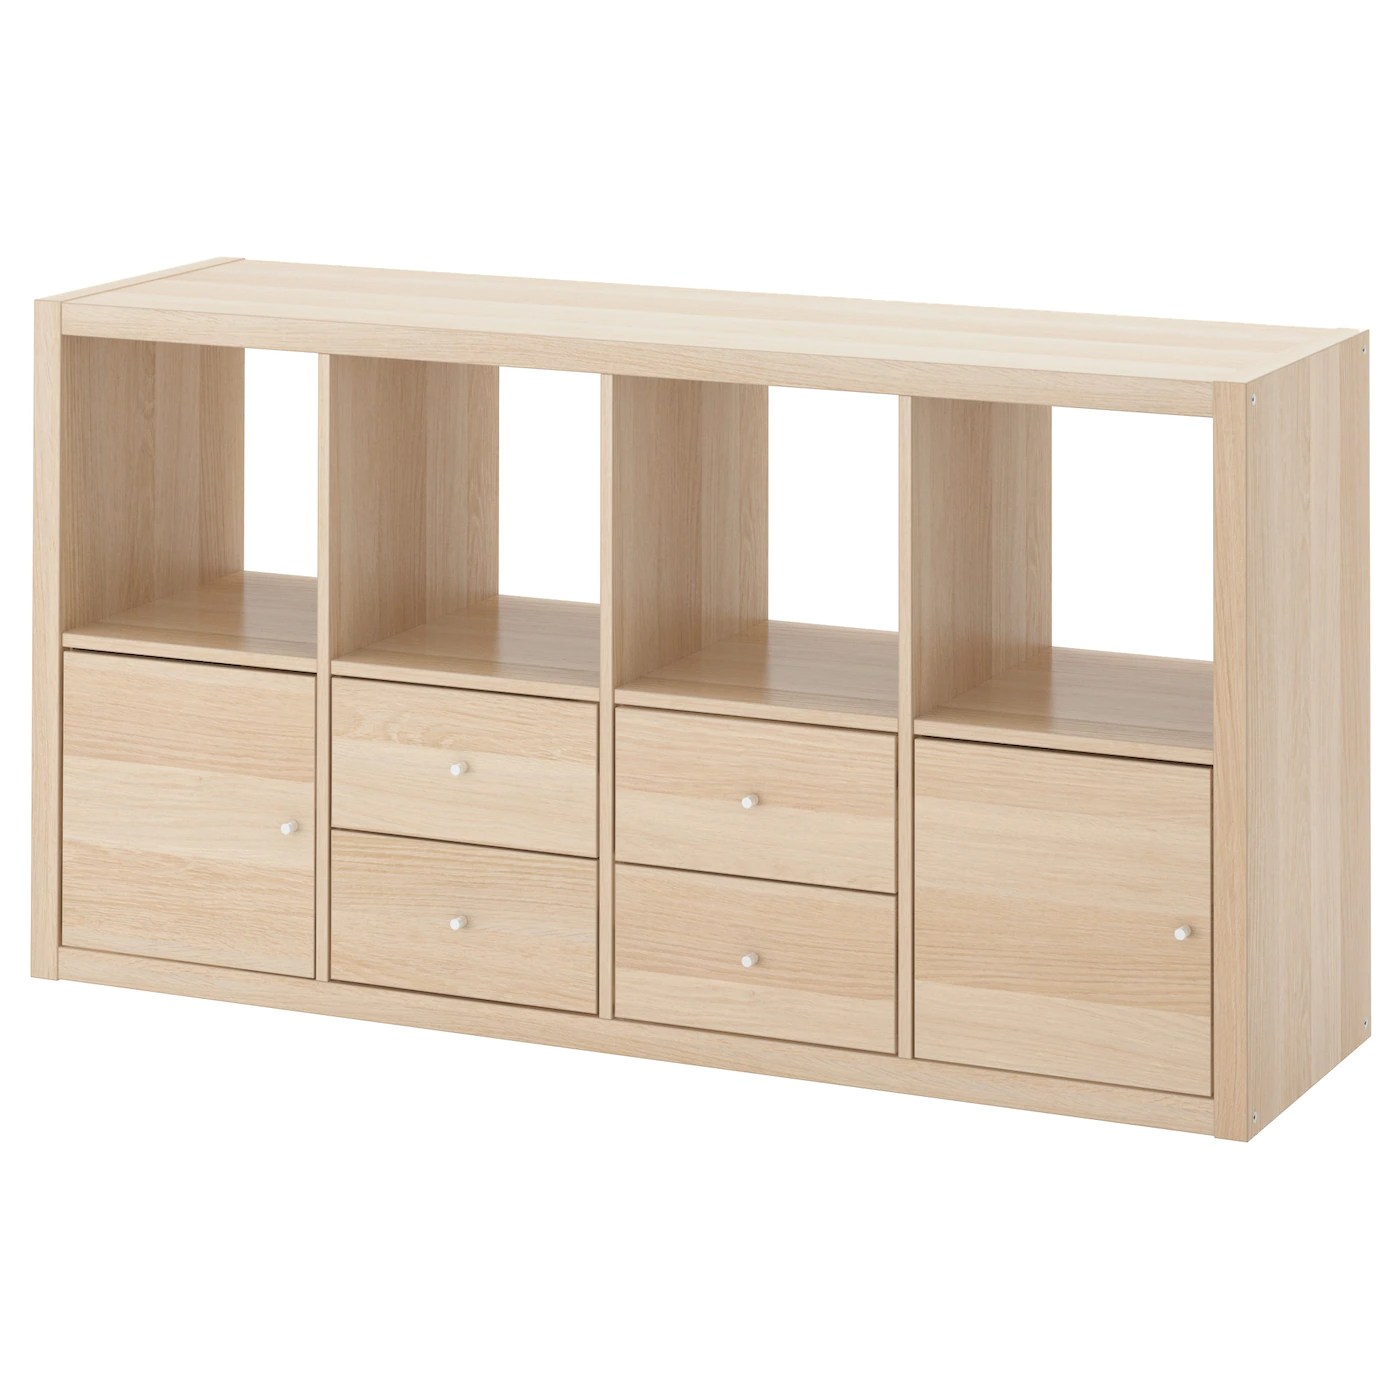 Ikea Kallax Cd Storage Kallax Shelving Unit With 4 Inserts White Stained Oak Effect 147 X 77 Cm Ikea